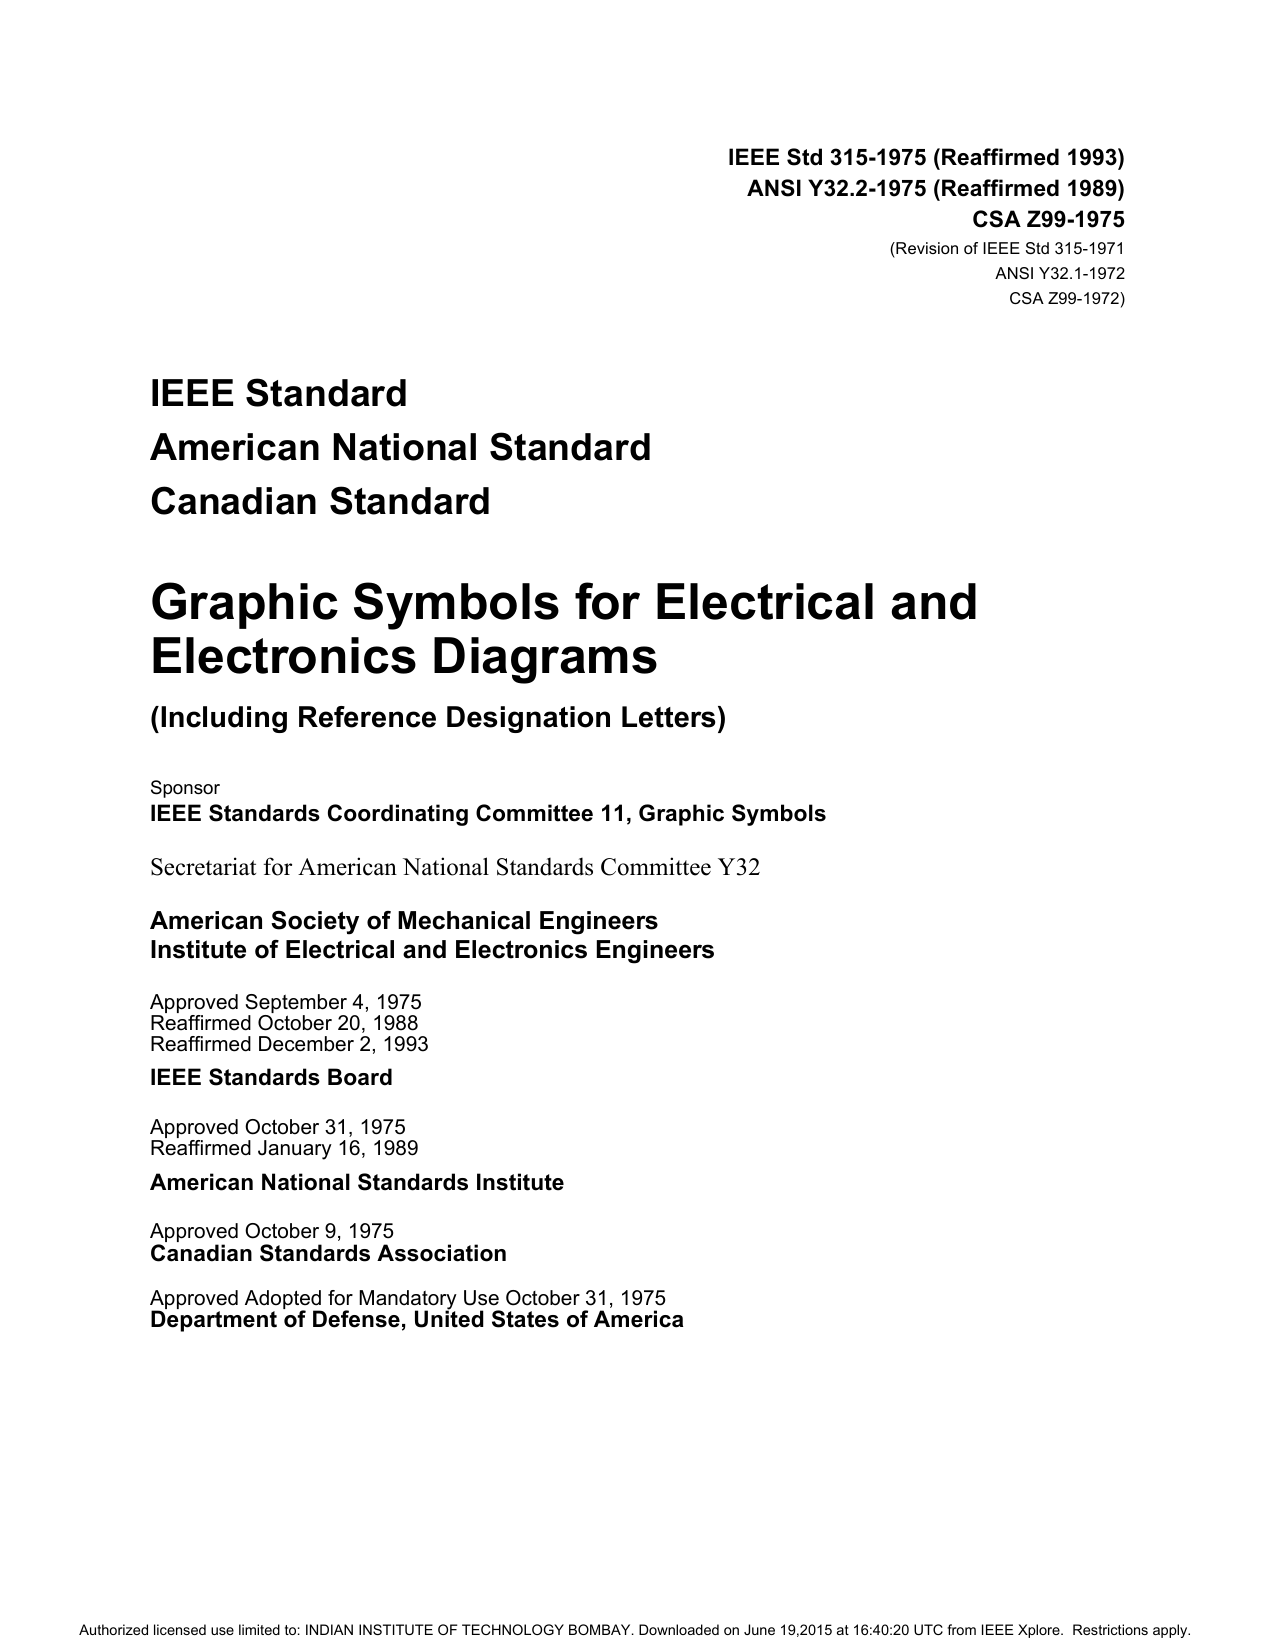 Ansi Y3211 Graphical Symbols For Process Flow Diagrams Expert Standard Diagram Ieee Std 315 1975 Department Of Electrical Engineering Indian